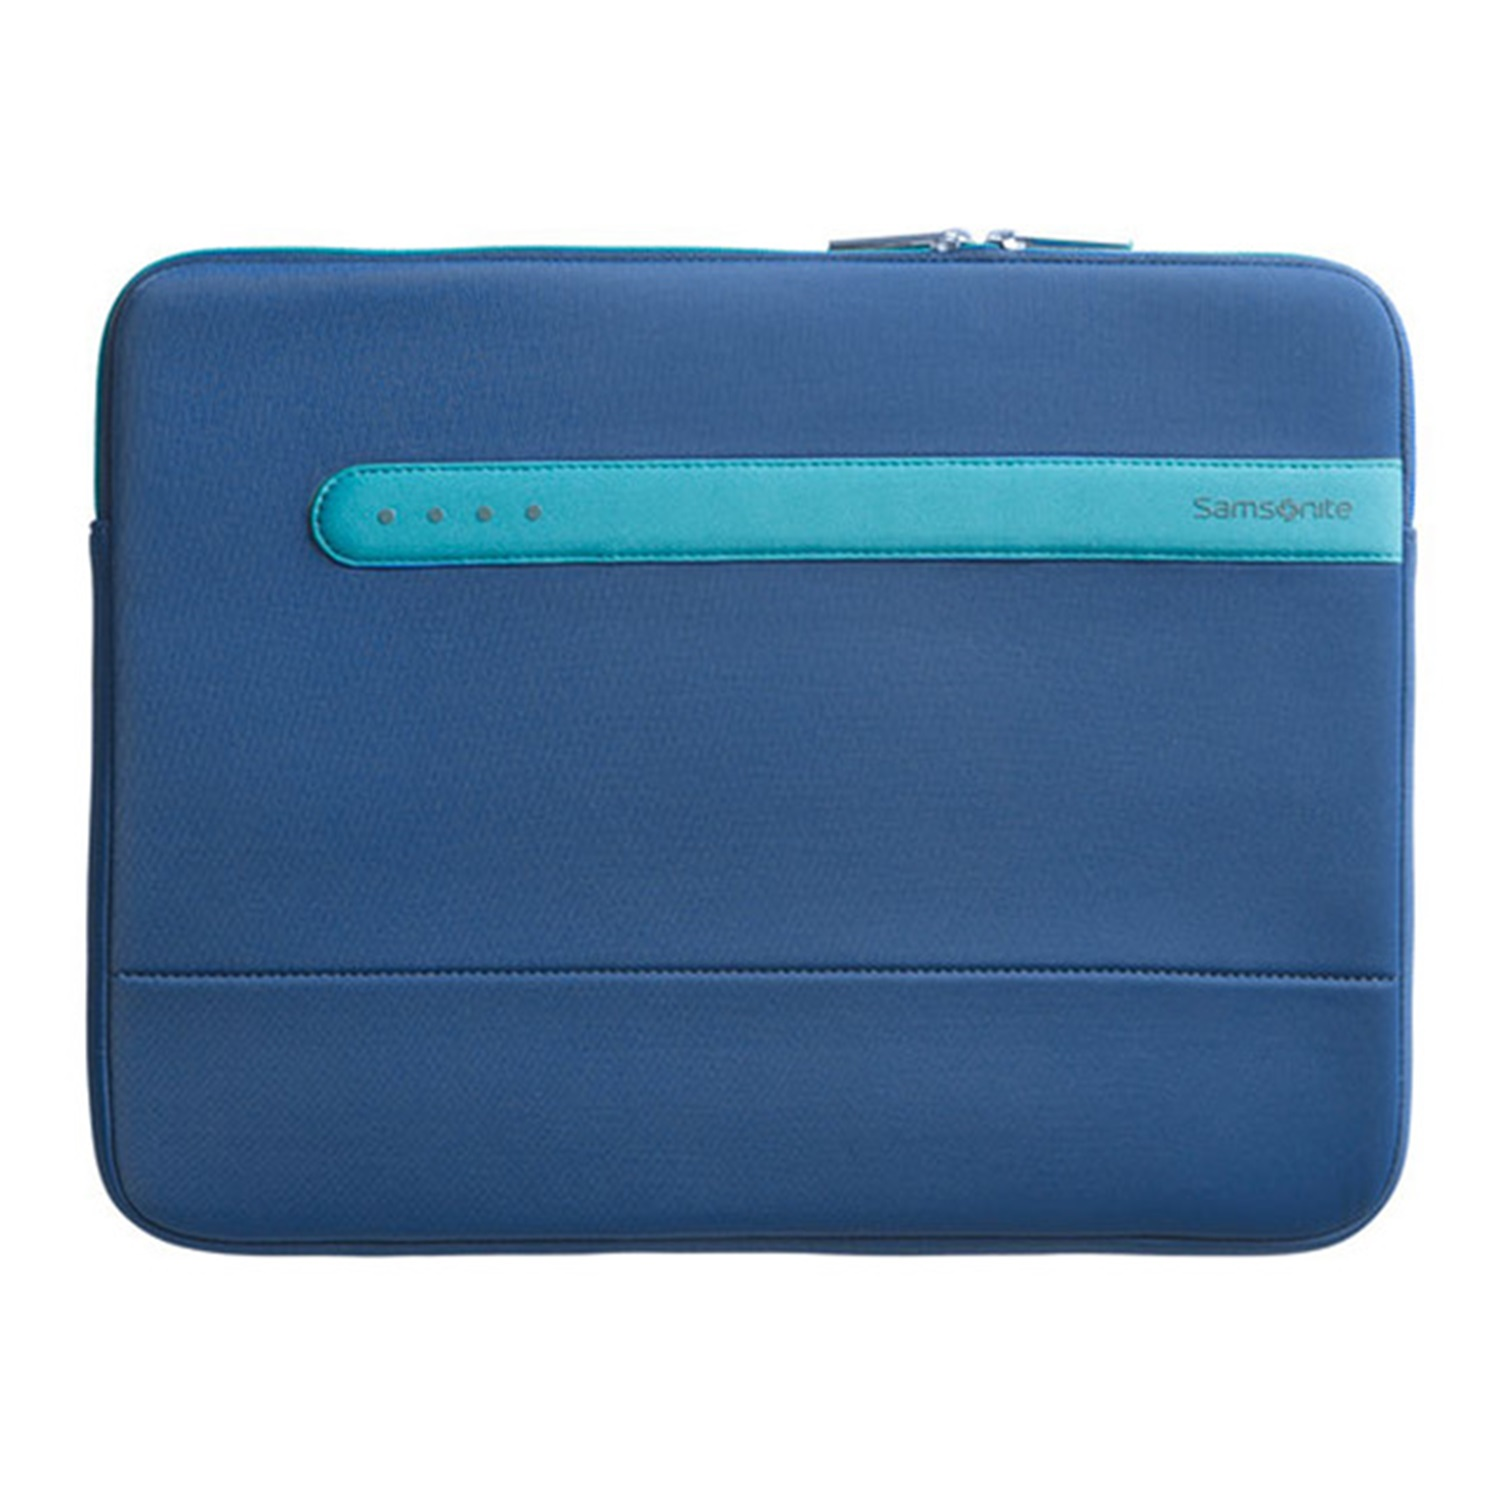 SAMSONITE - BORSE NOTEBOOK - 5414847442971